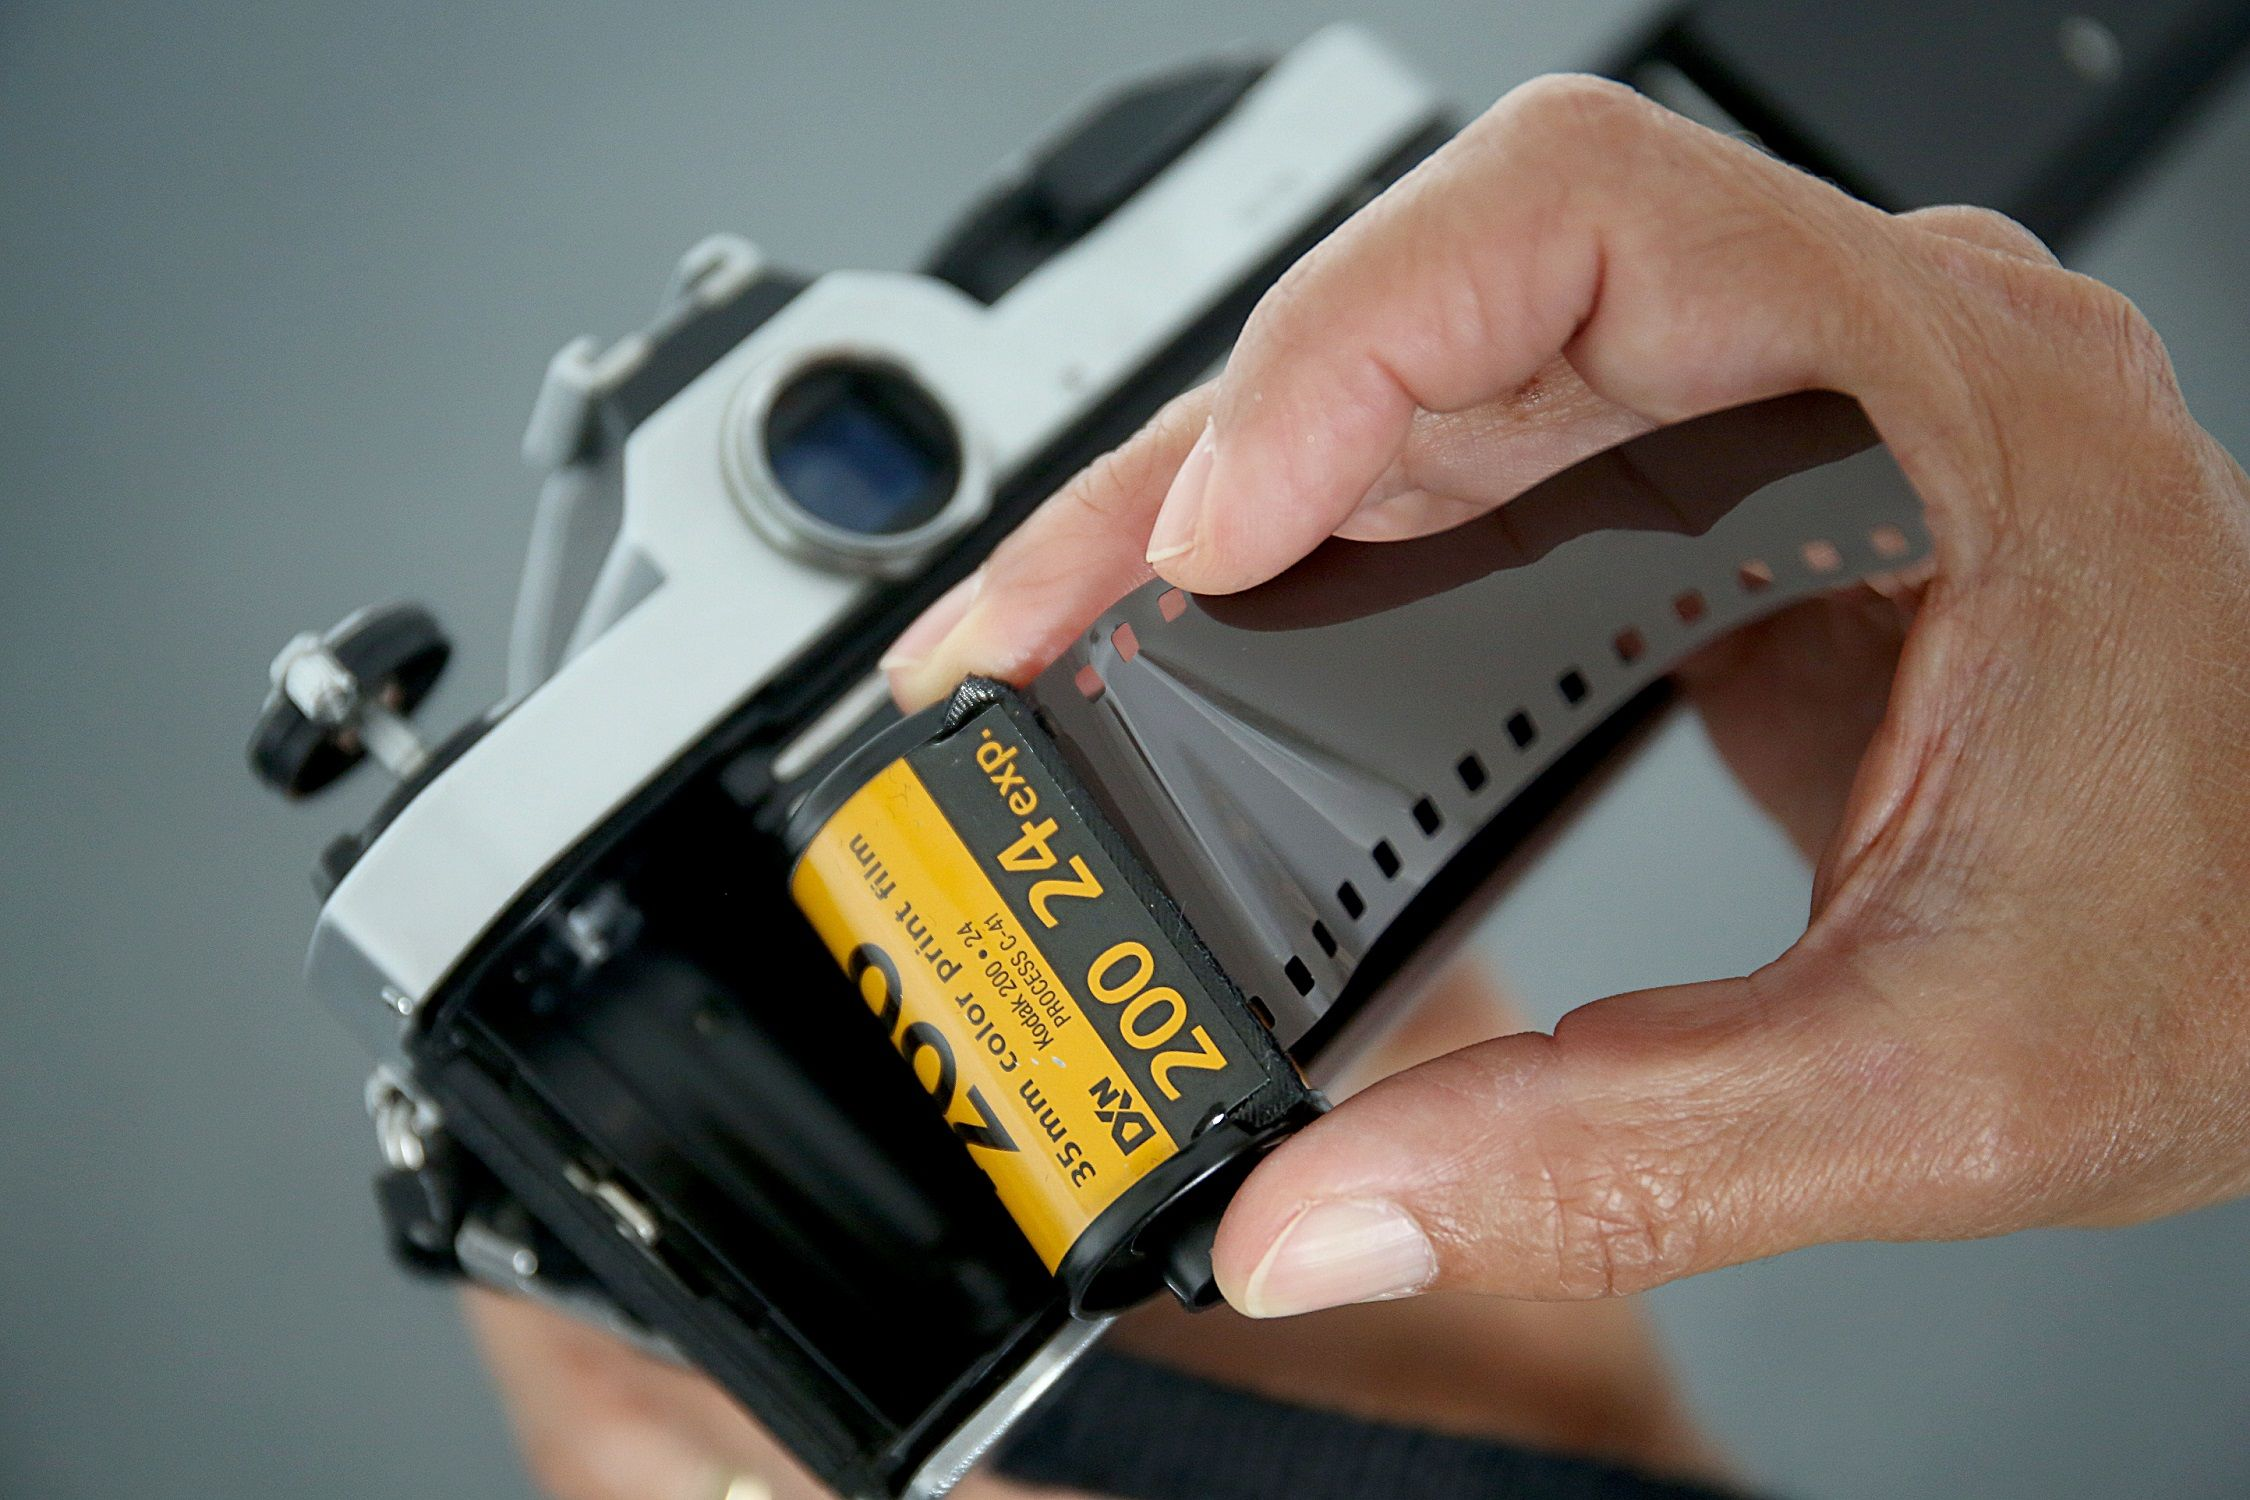 Just when you thought you'd never see film again, Kodak